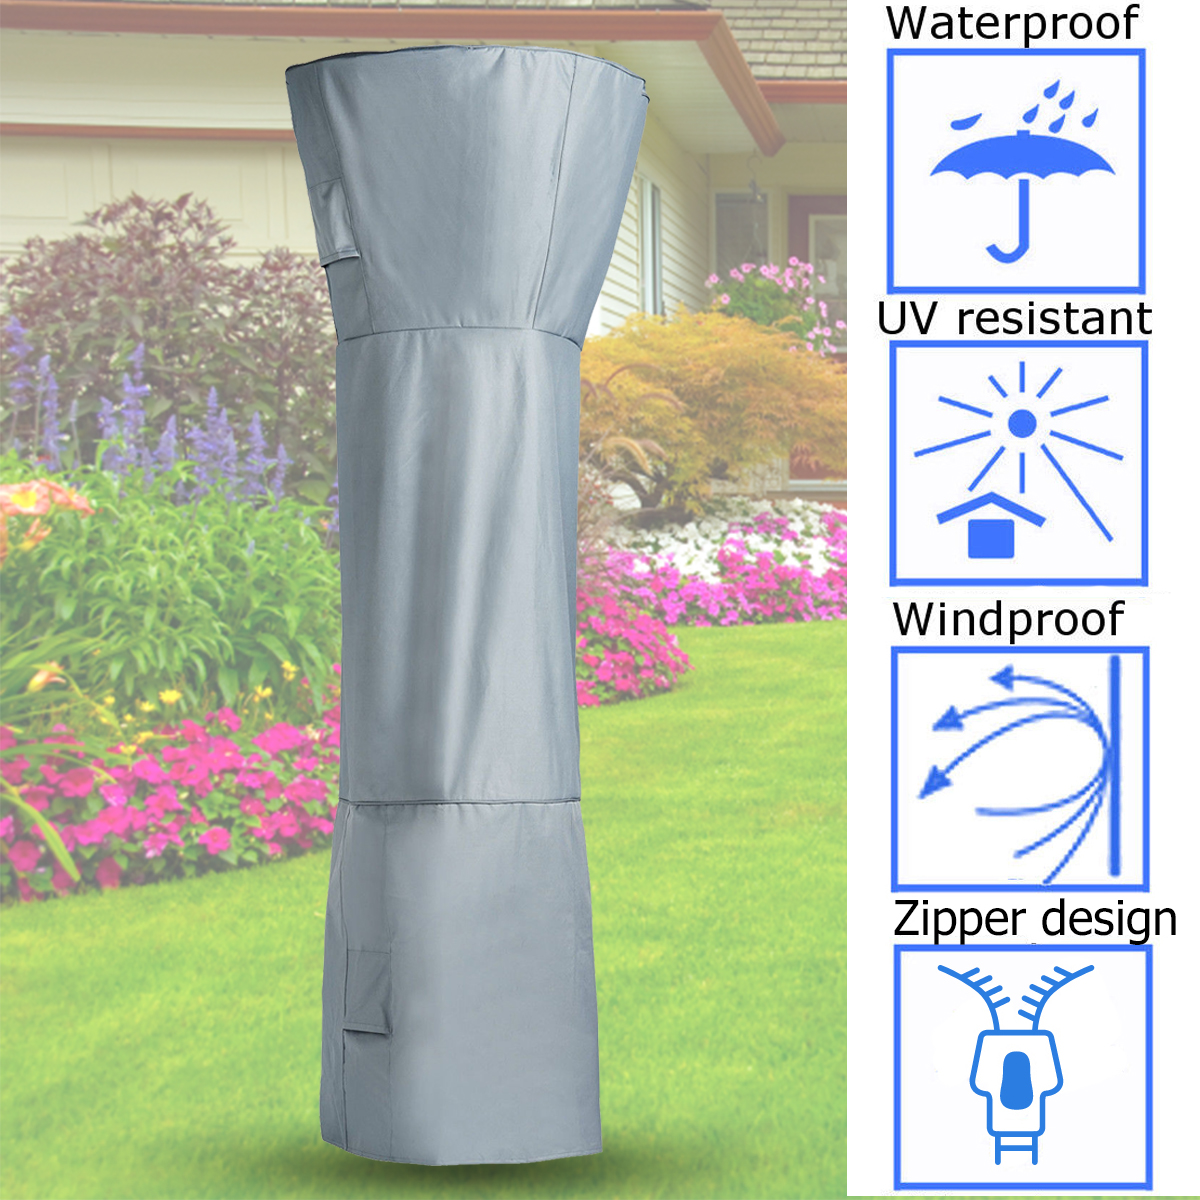 Liberal Polyester Patio Heater Cover For Mushroom Shape Type Heater Waterproof Protector Cover Fabric Outdoor Home Garden 251cmx91cm Dust Covers